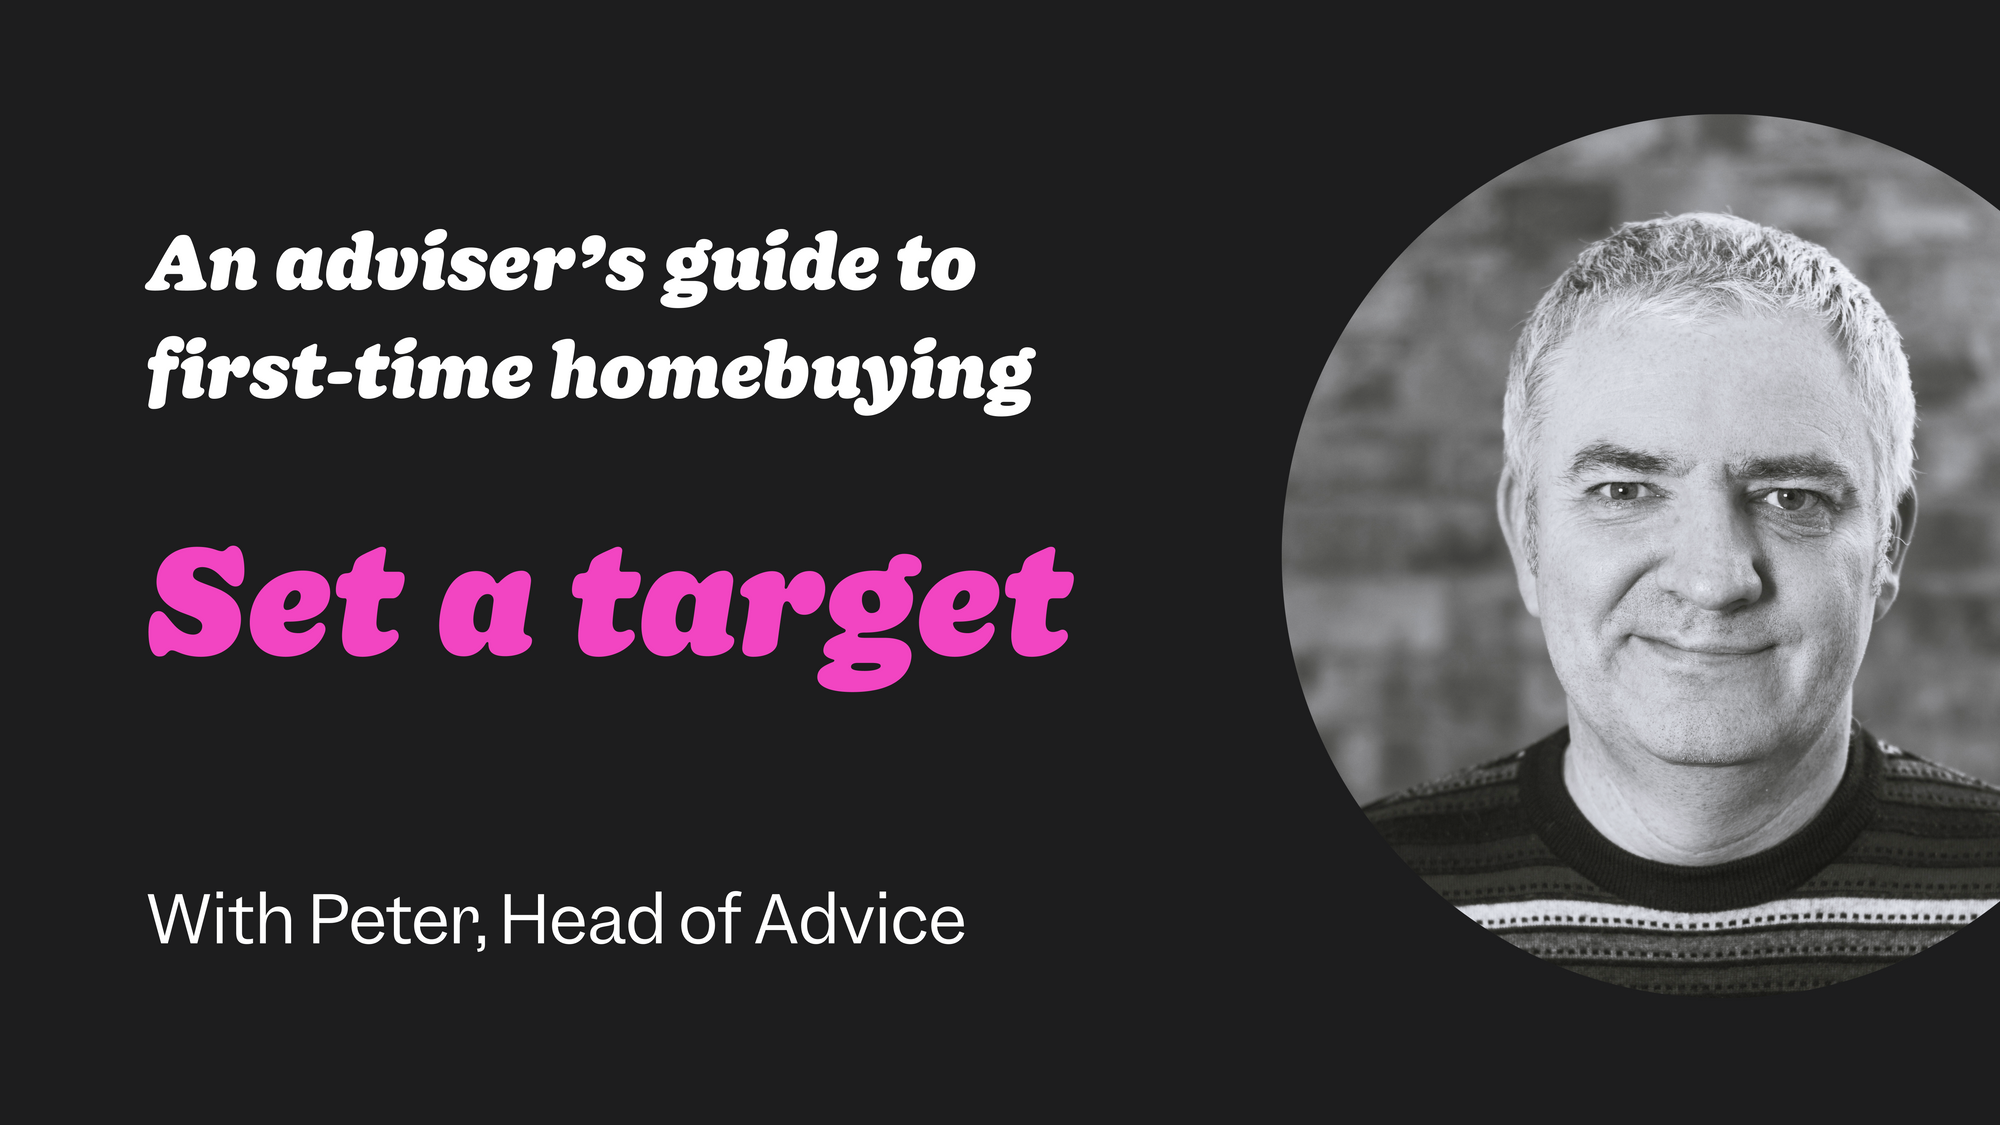 First-time buyer guide #2: Set a target